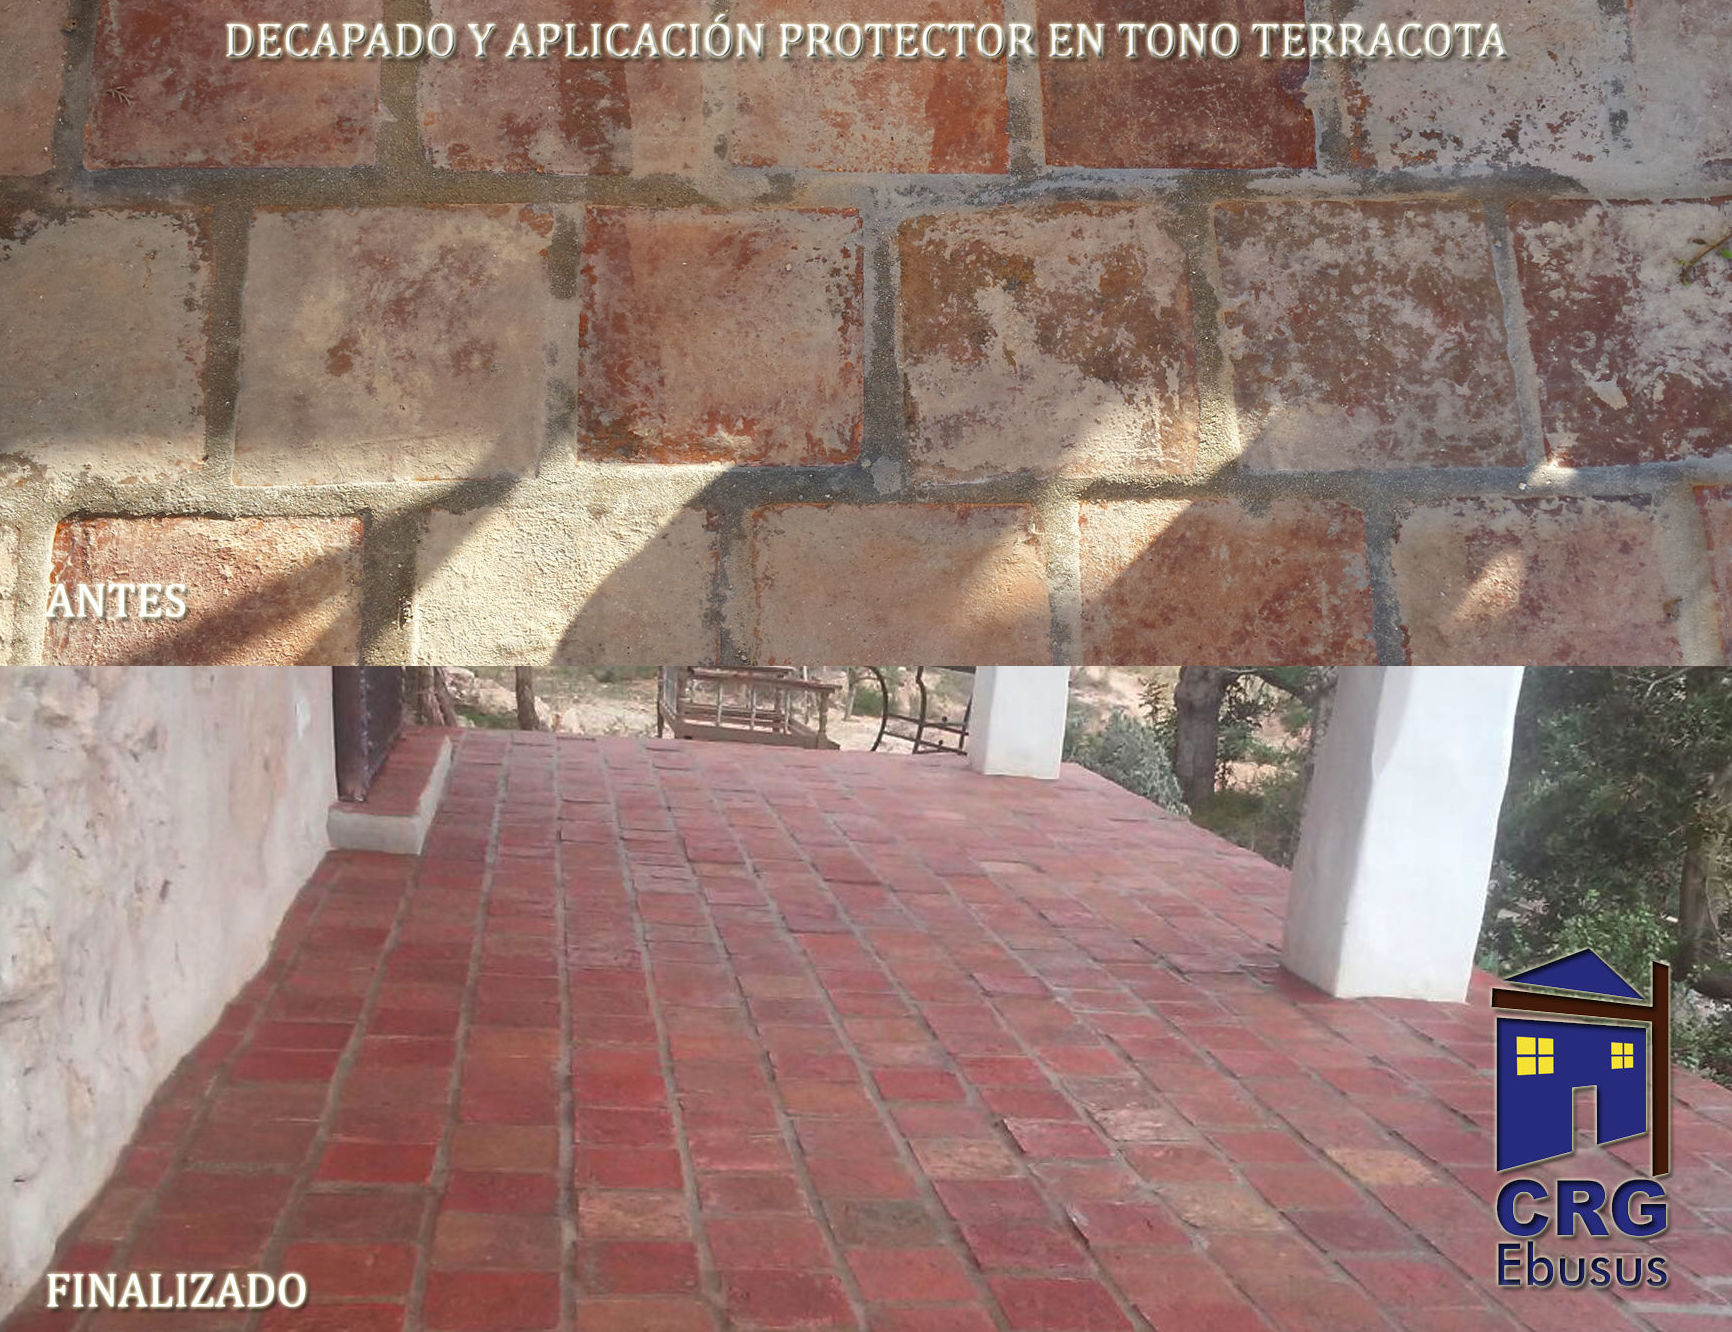 Treatment of scouring in terracotta floors